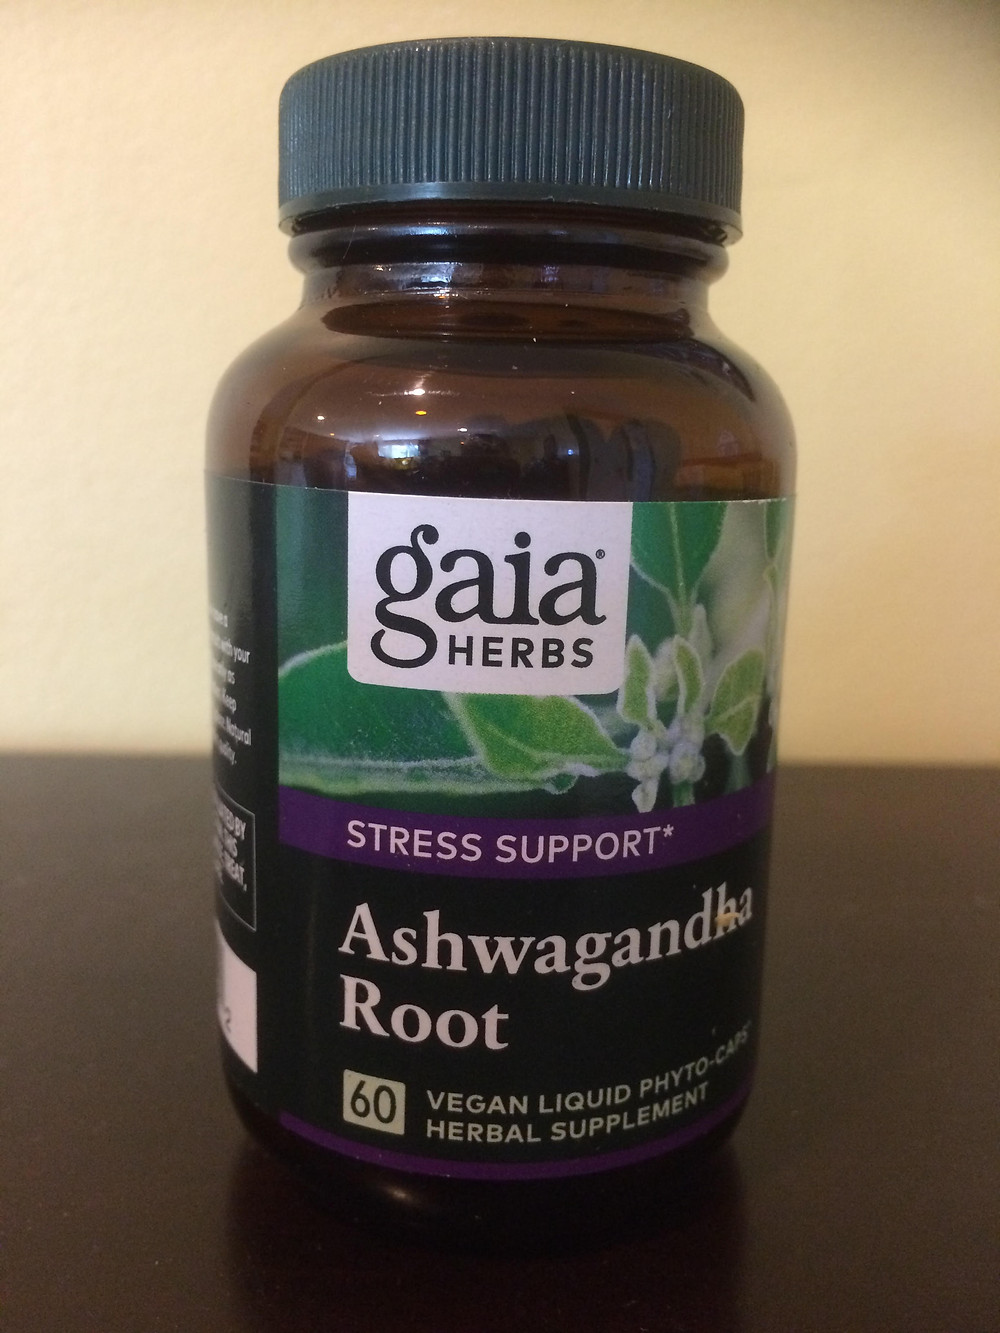 Ashwaganda for anxiety and depression relief